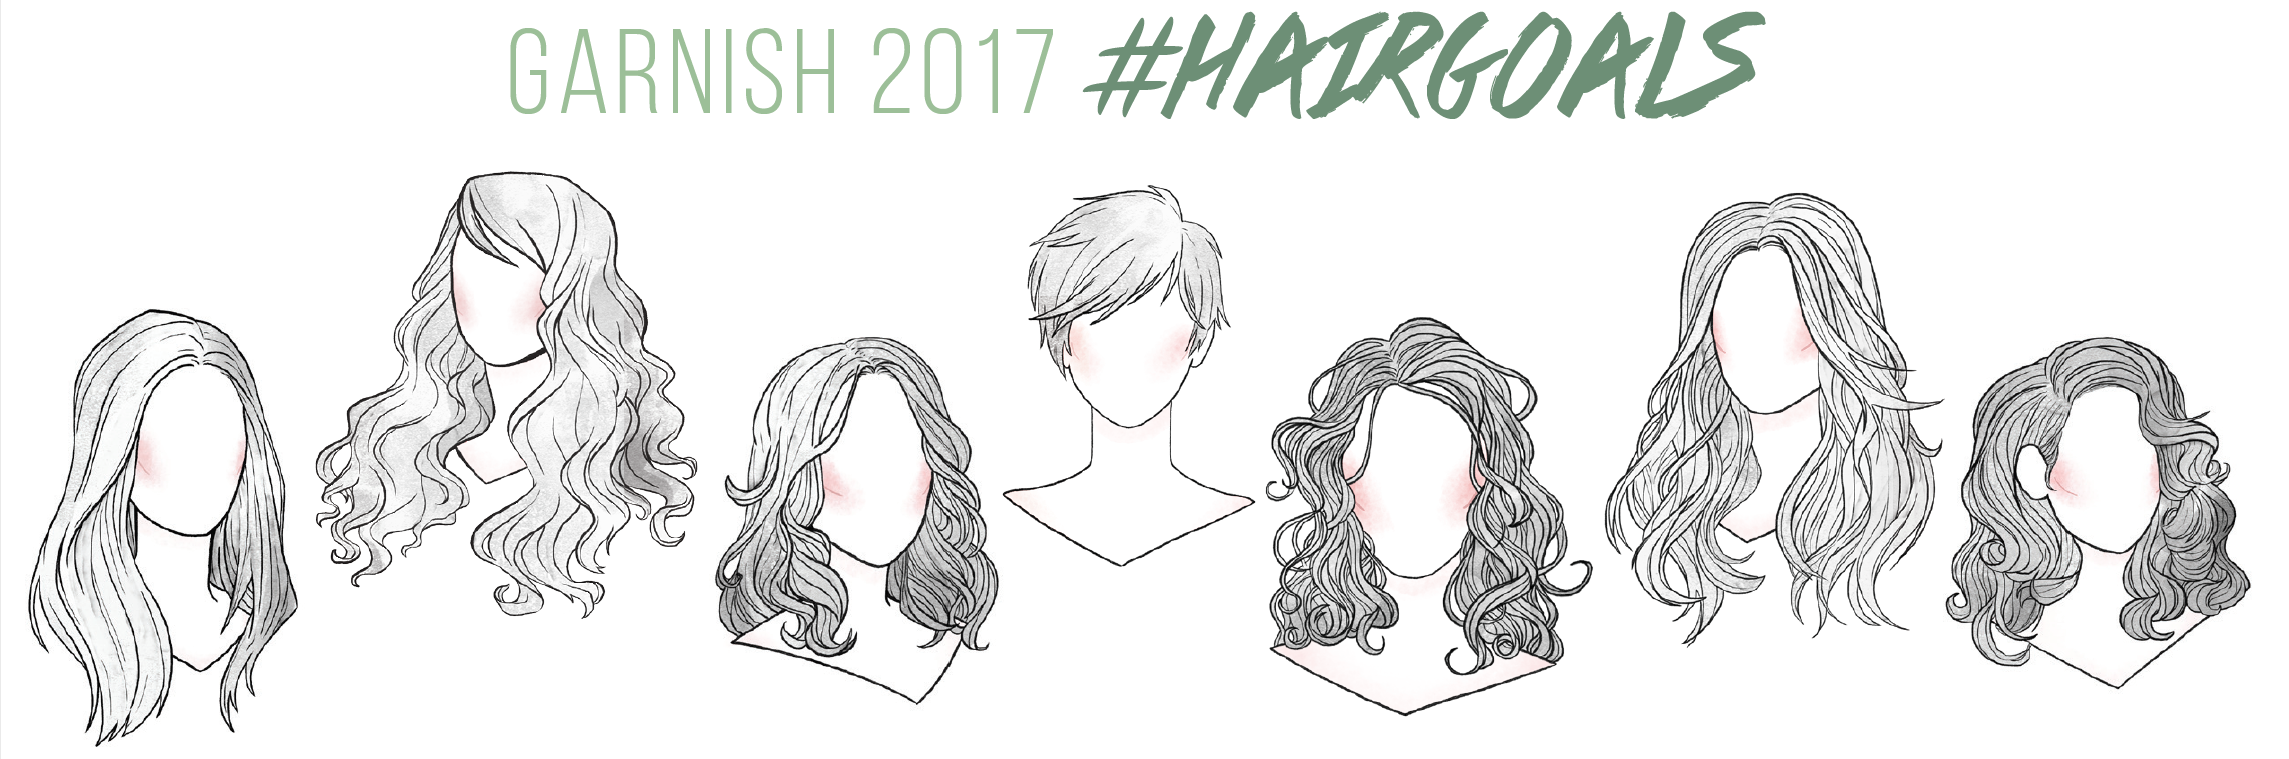 Achieve your #hairgoals with Garnish